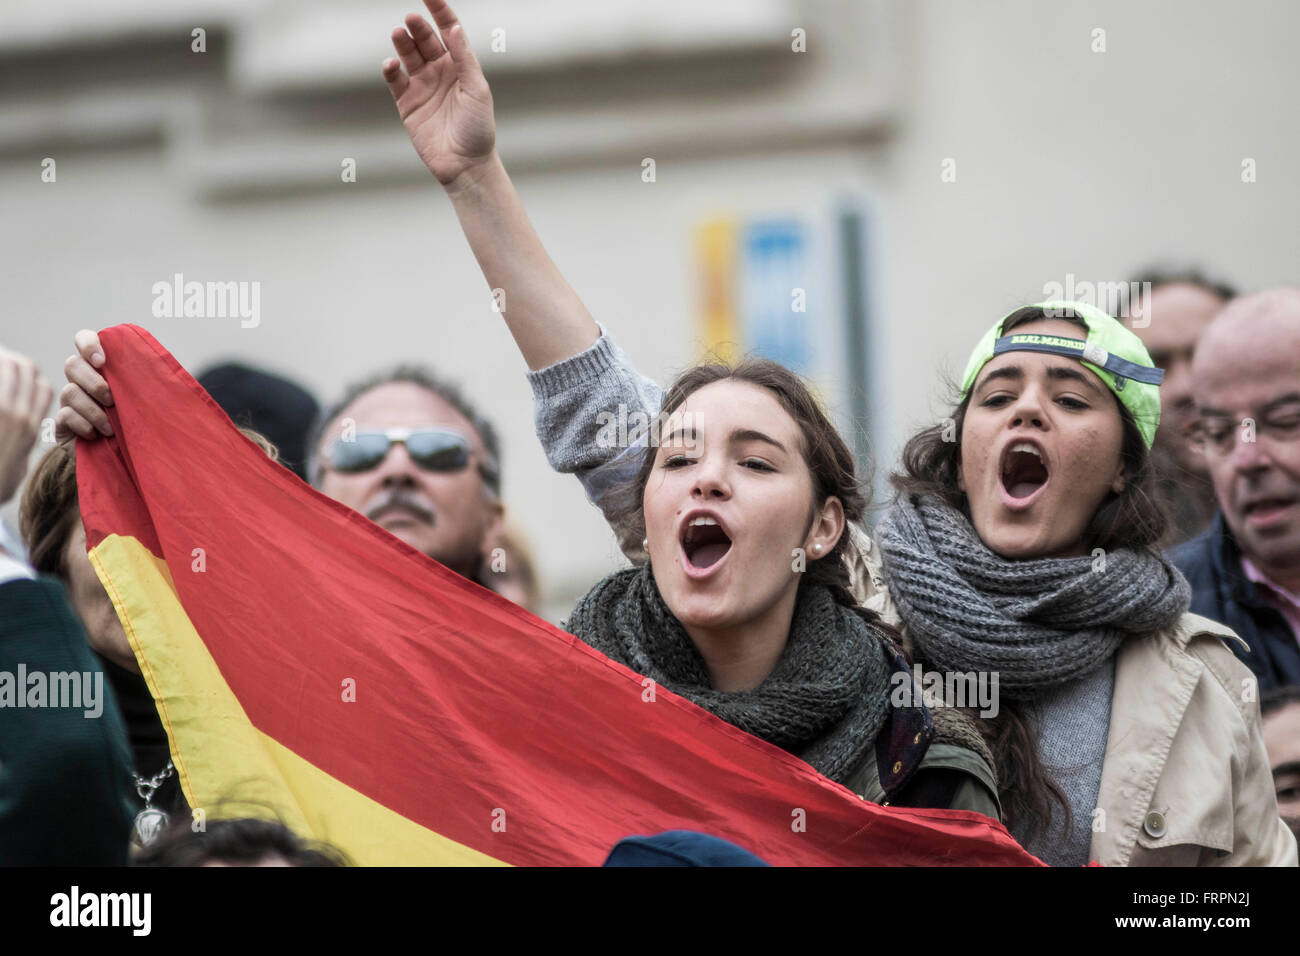 Vatican City, Vatican. 23rd Mar, 2016. Spanish pilgrims shouts slogans durings a Weekly General Audience celebrated - Stock Image